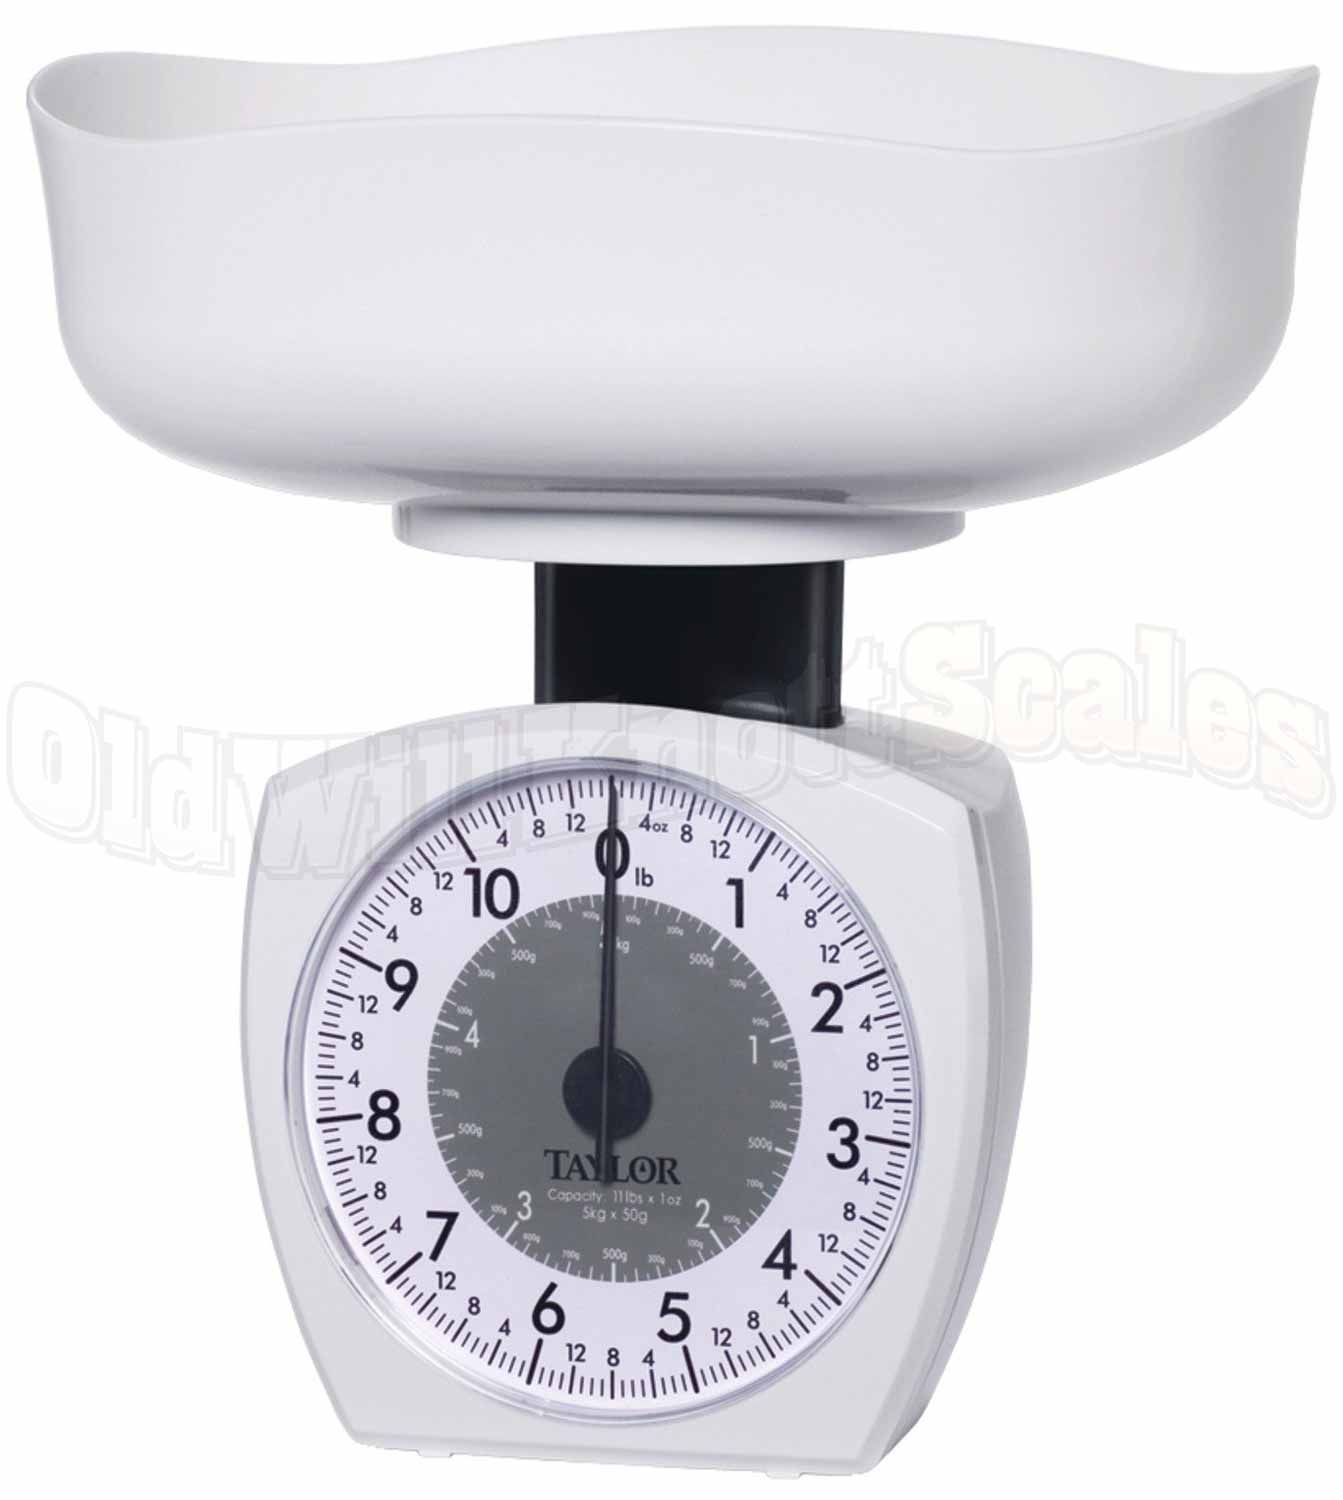 Taylor 3701kl Mechanical Kitchen Scale With Extra Large